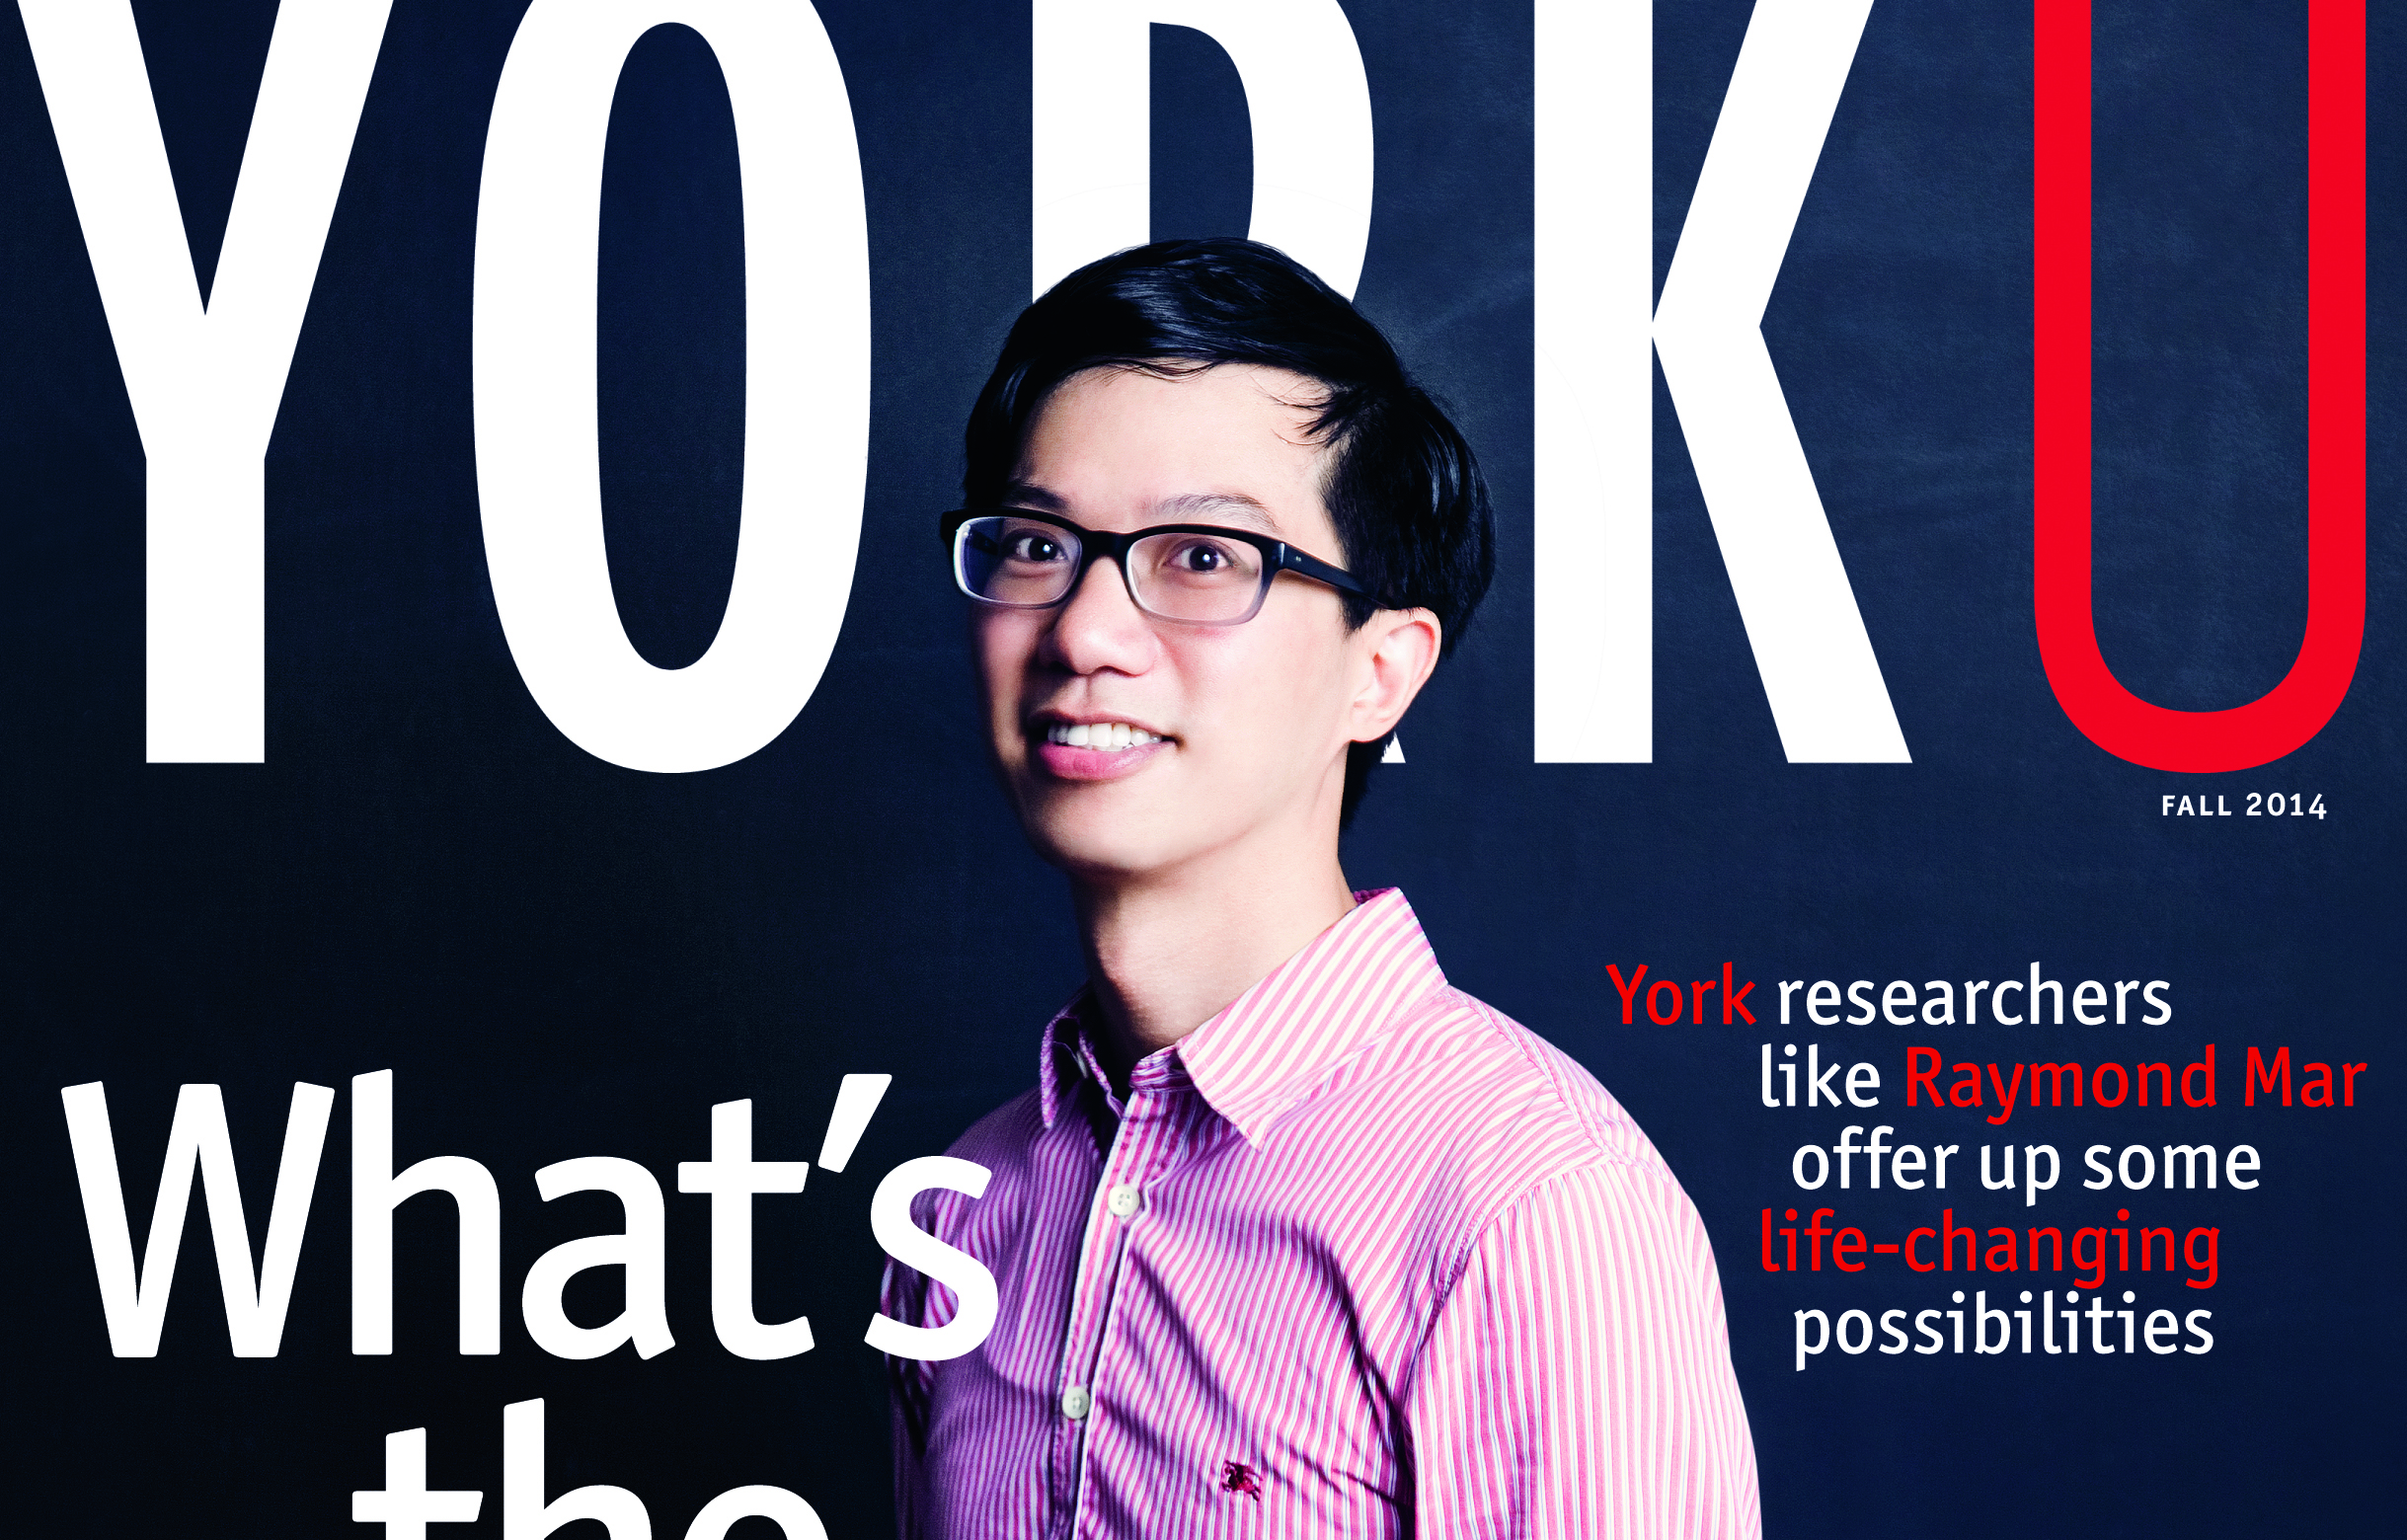 YorkU Fall2014 Cover cropped